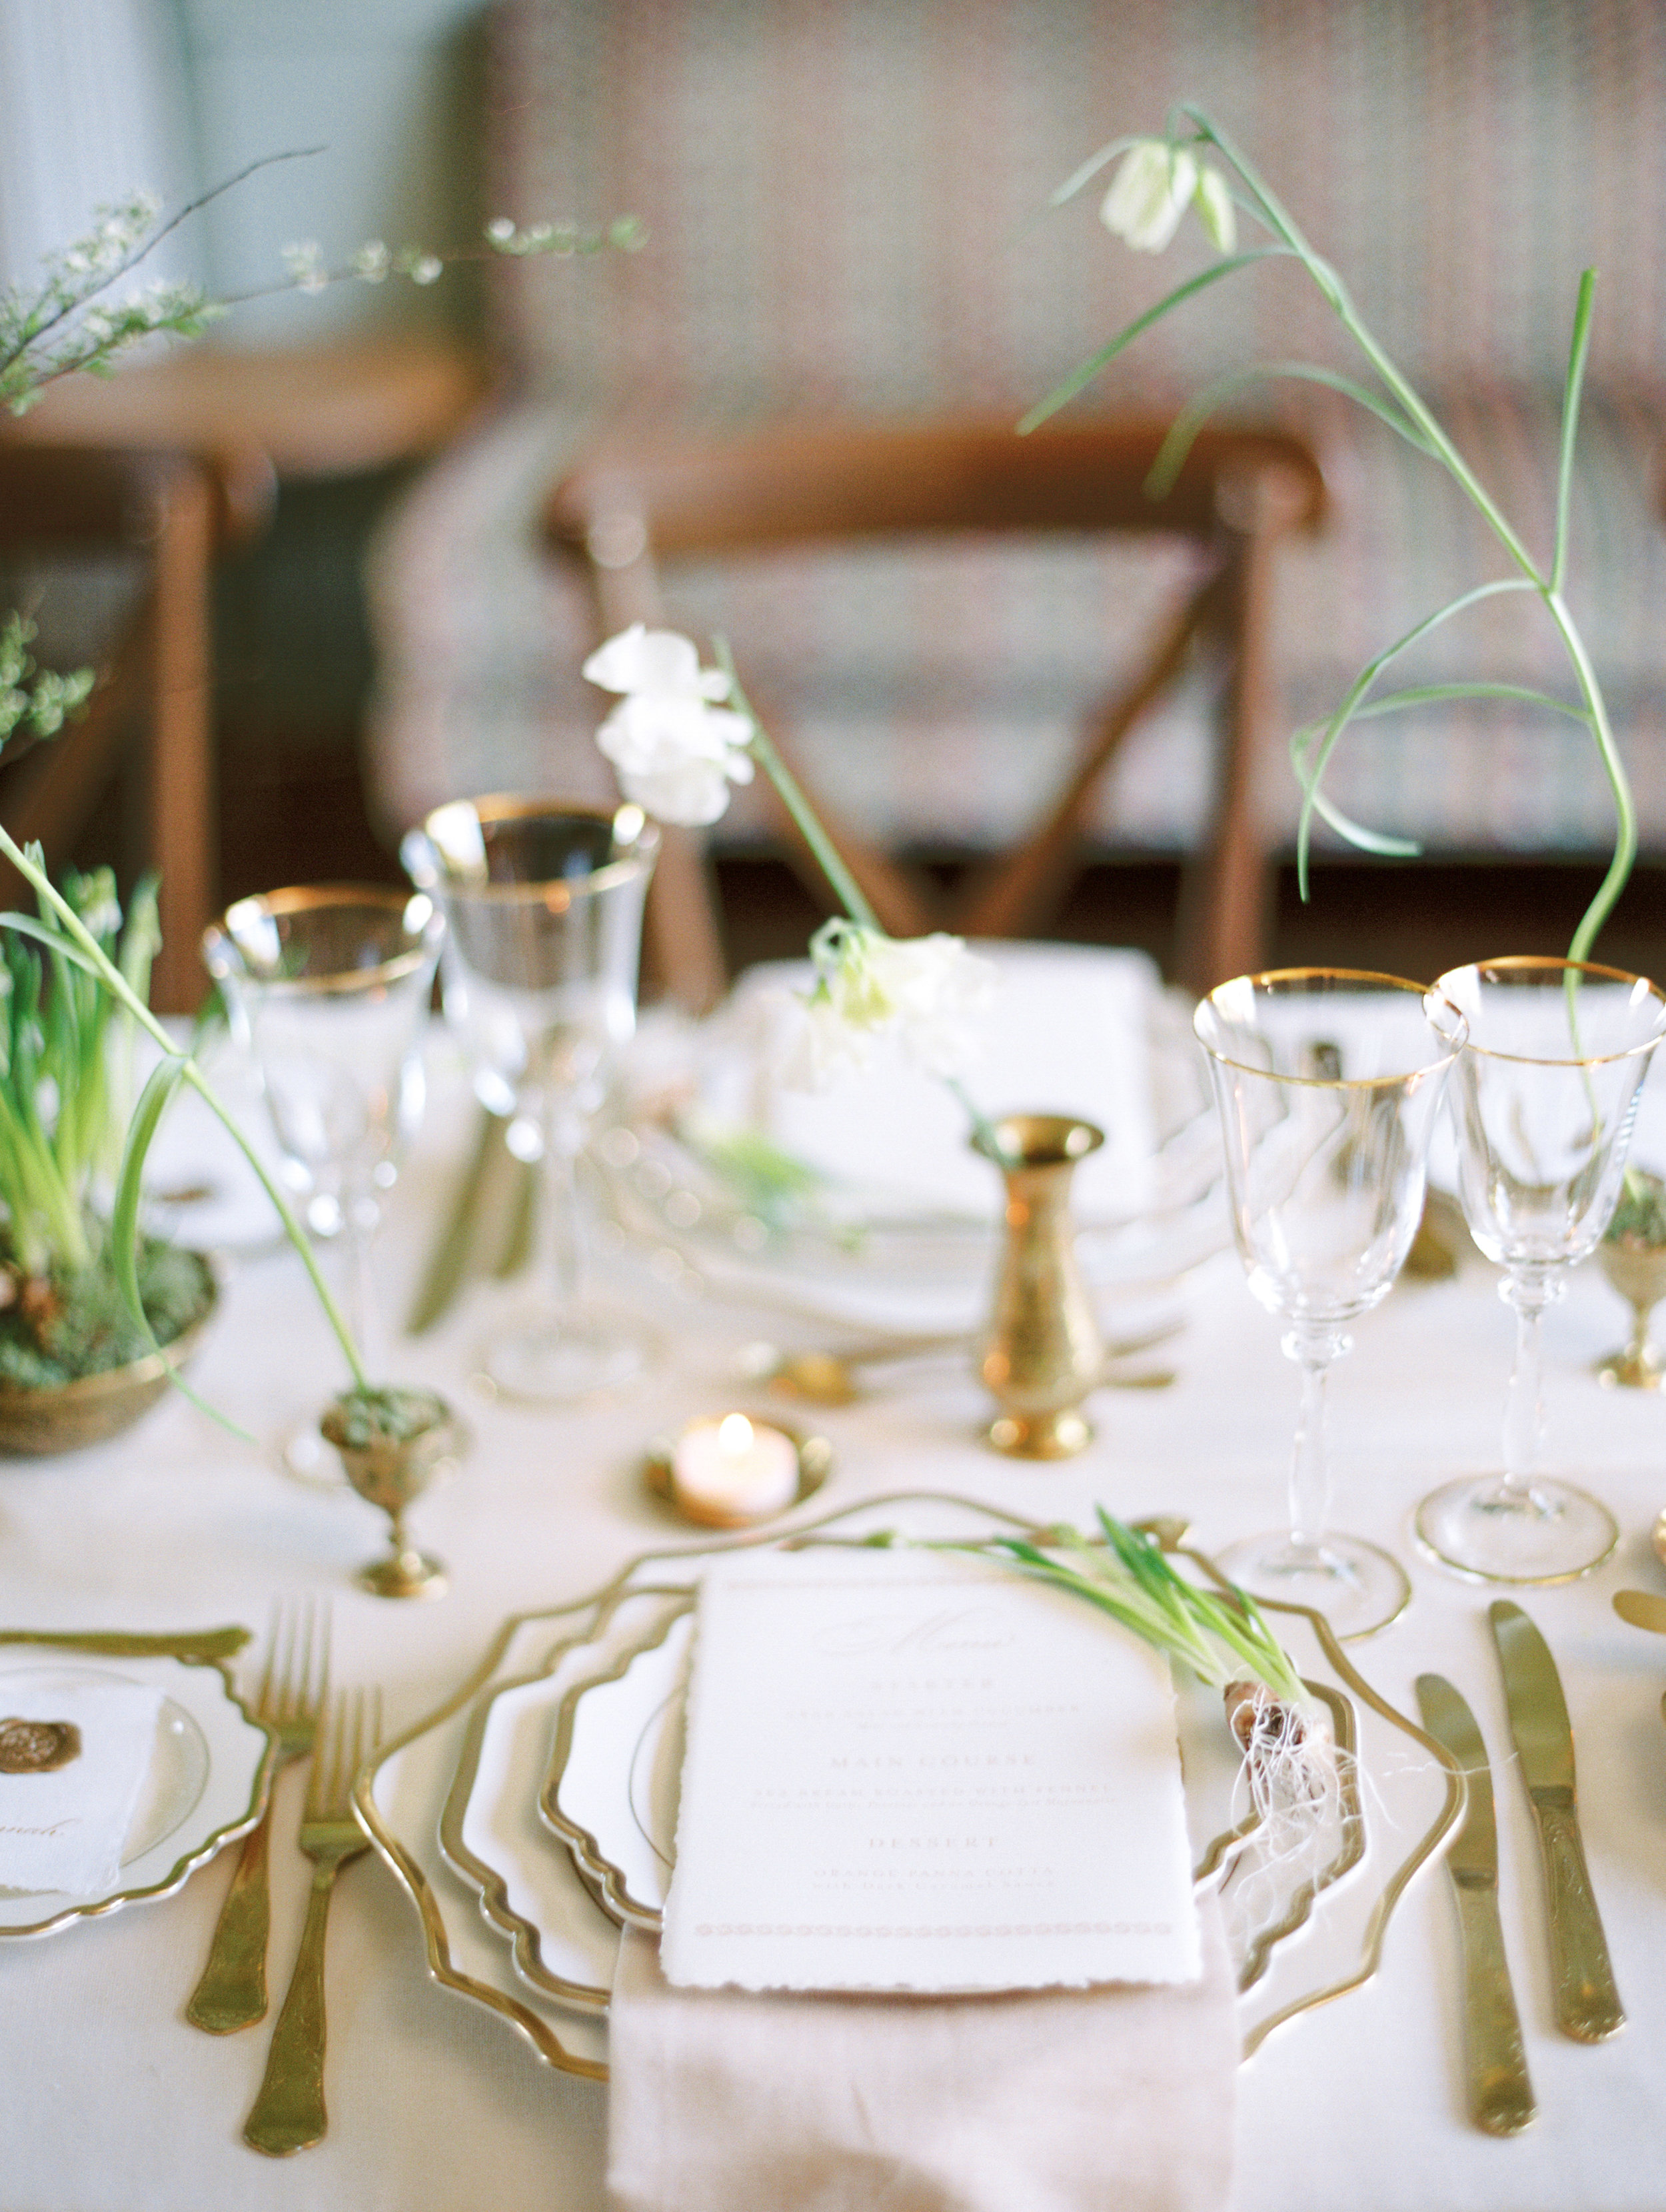 The Timeless Stylist-Elegant Wedding and Event Styling-Spring Design Wedding Tables-Neutral Palette with Brass